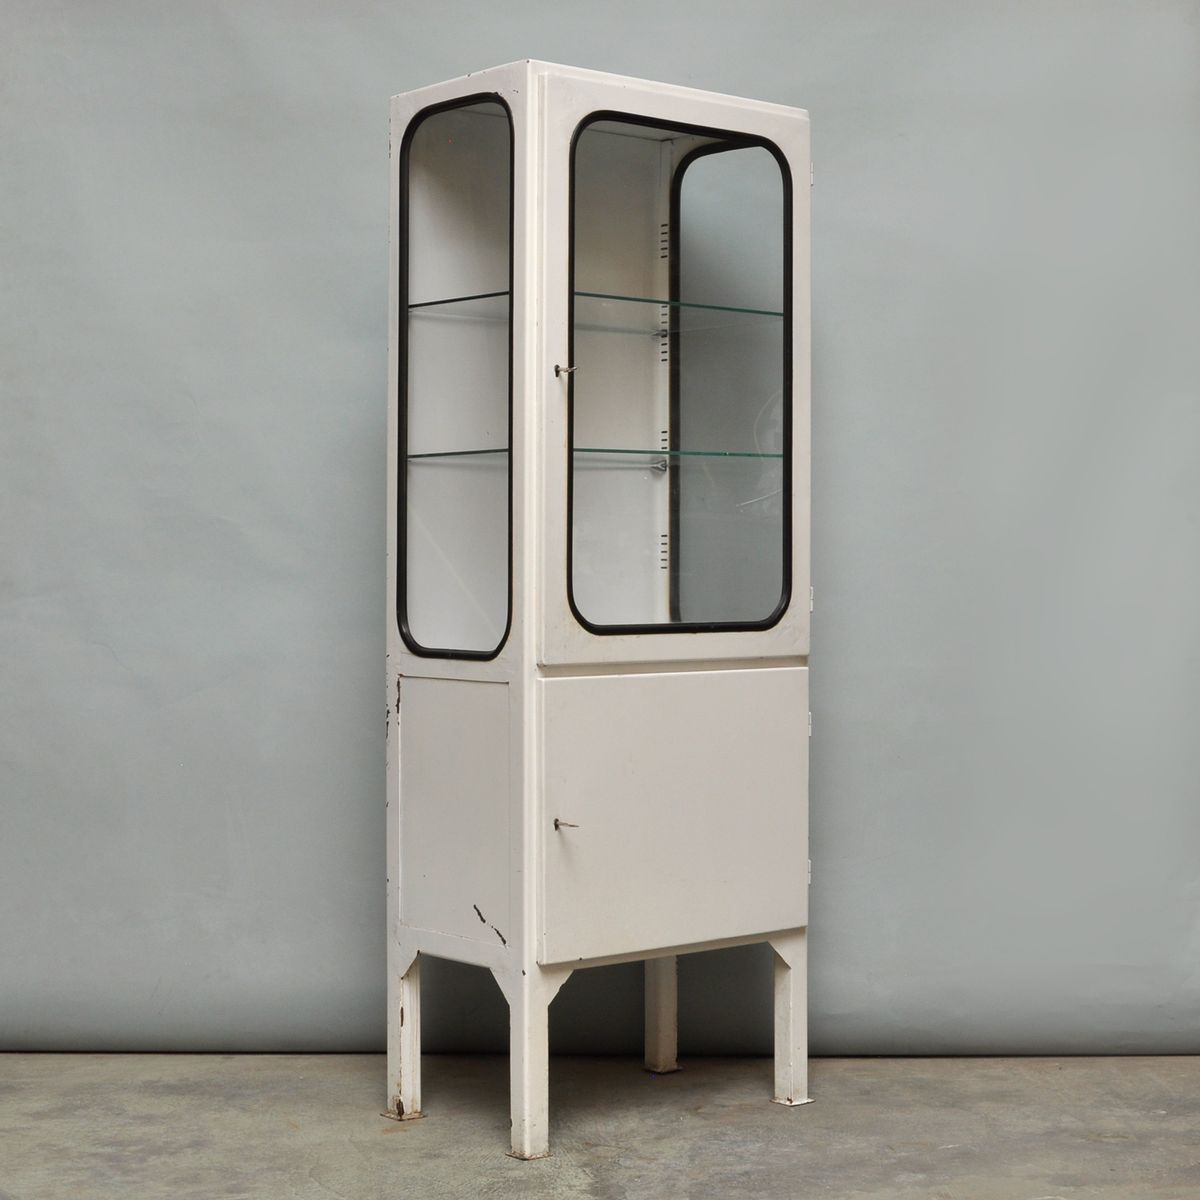 Steel Cabinet For Sale Vintage Steel And Glass Medical Cabinet 1970s For Sale At